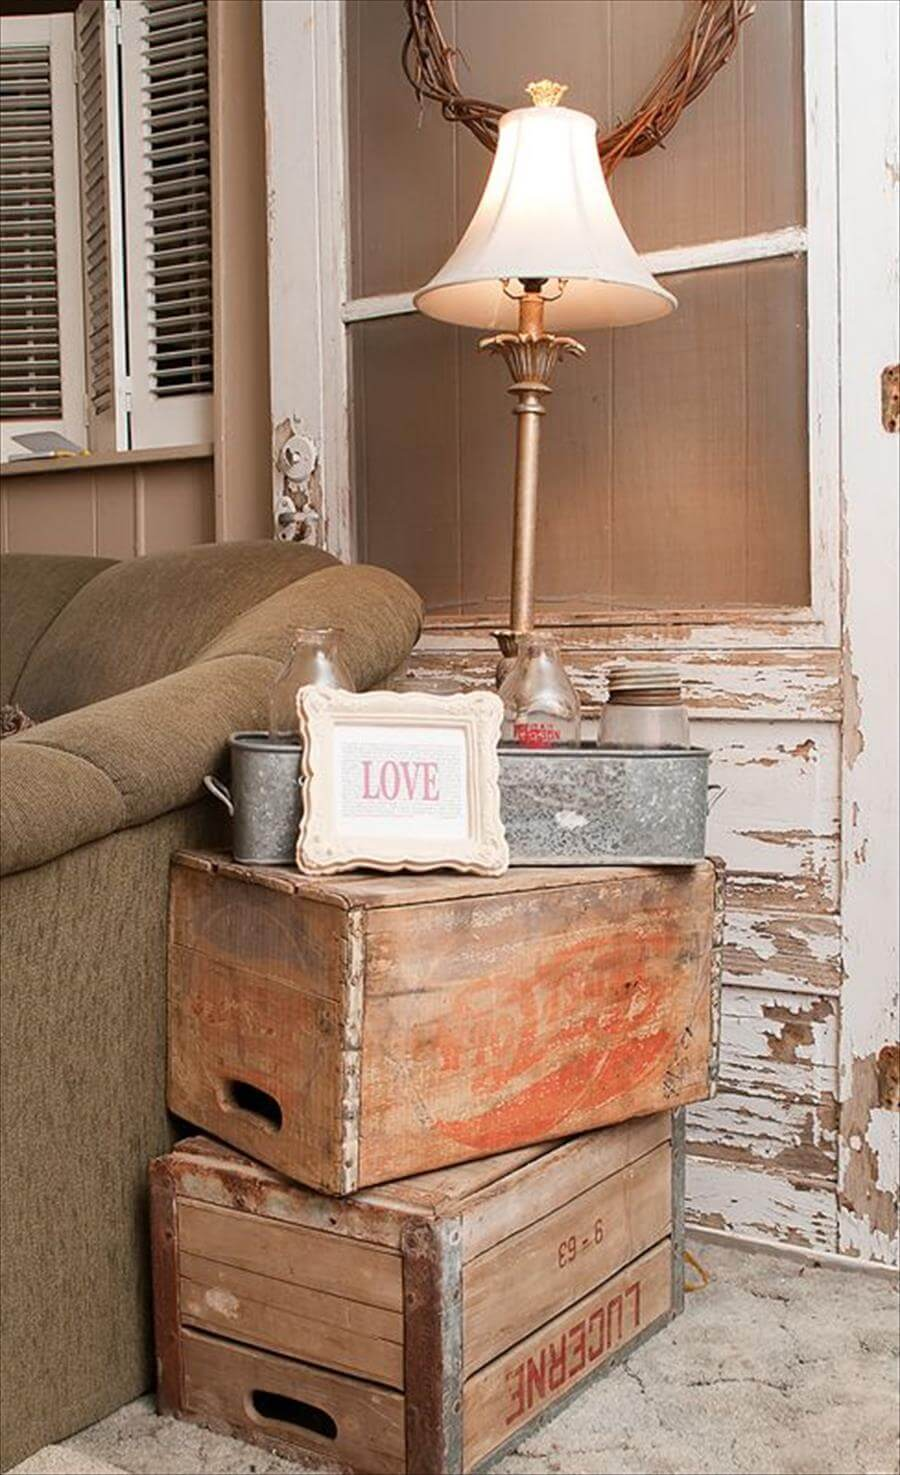 easy vintage side table from stacked packing crates - Vintage Bedroom Decor Ideas